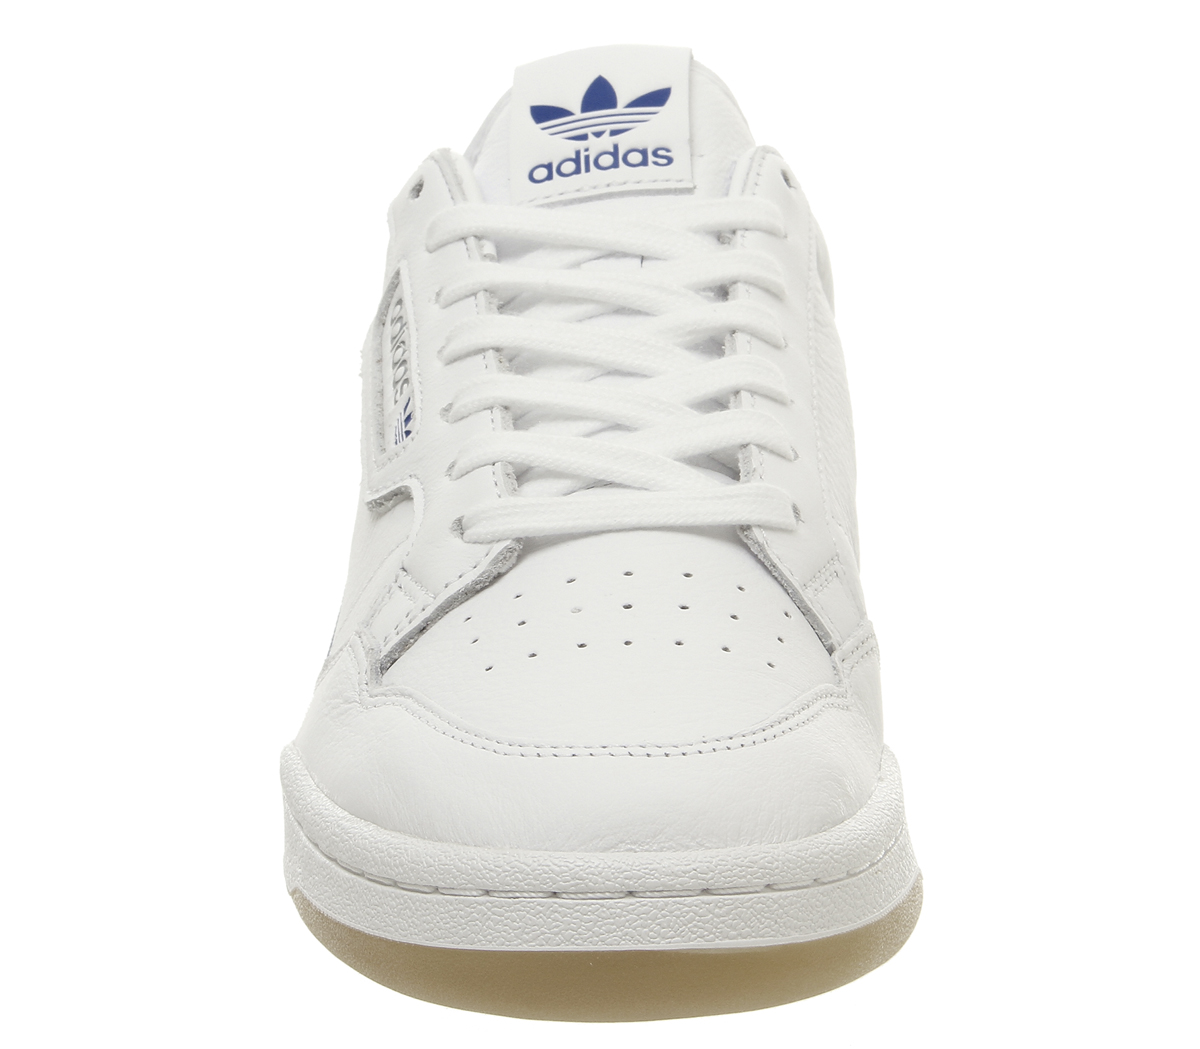 Adidas-Continental-80S-Trainers-White-Grey-One-Navy-Gum-Tfl-Trainers-Shoes